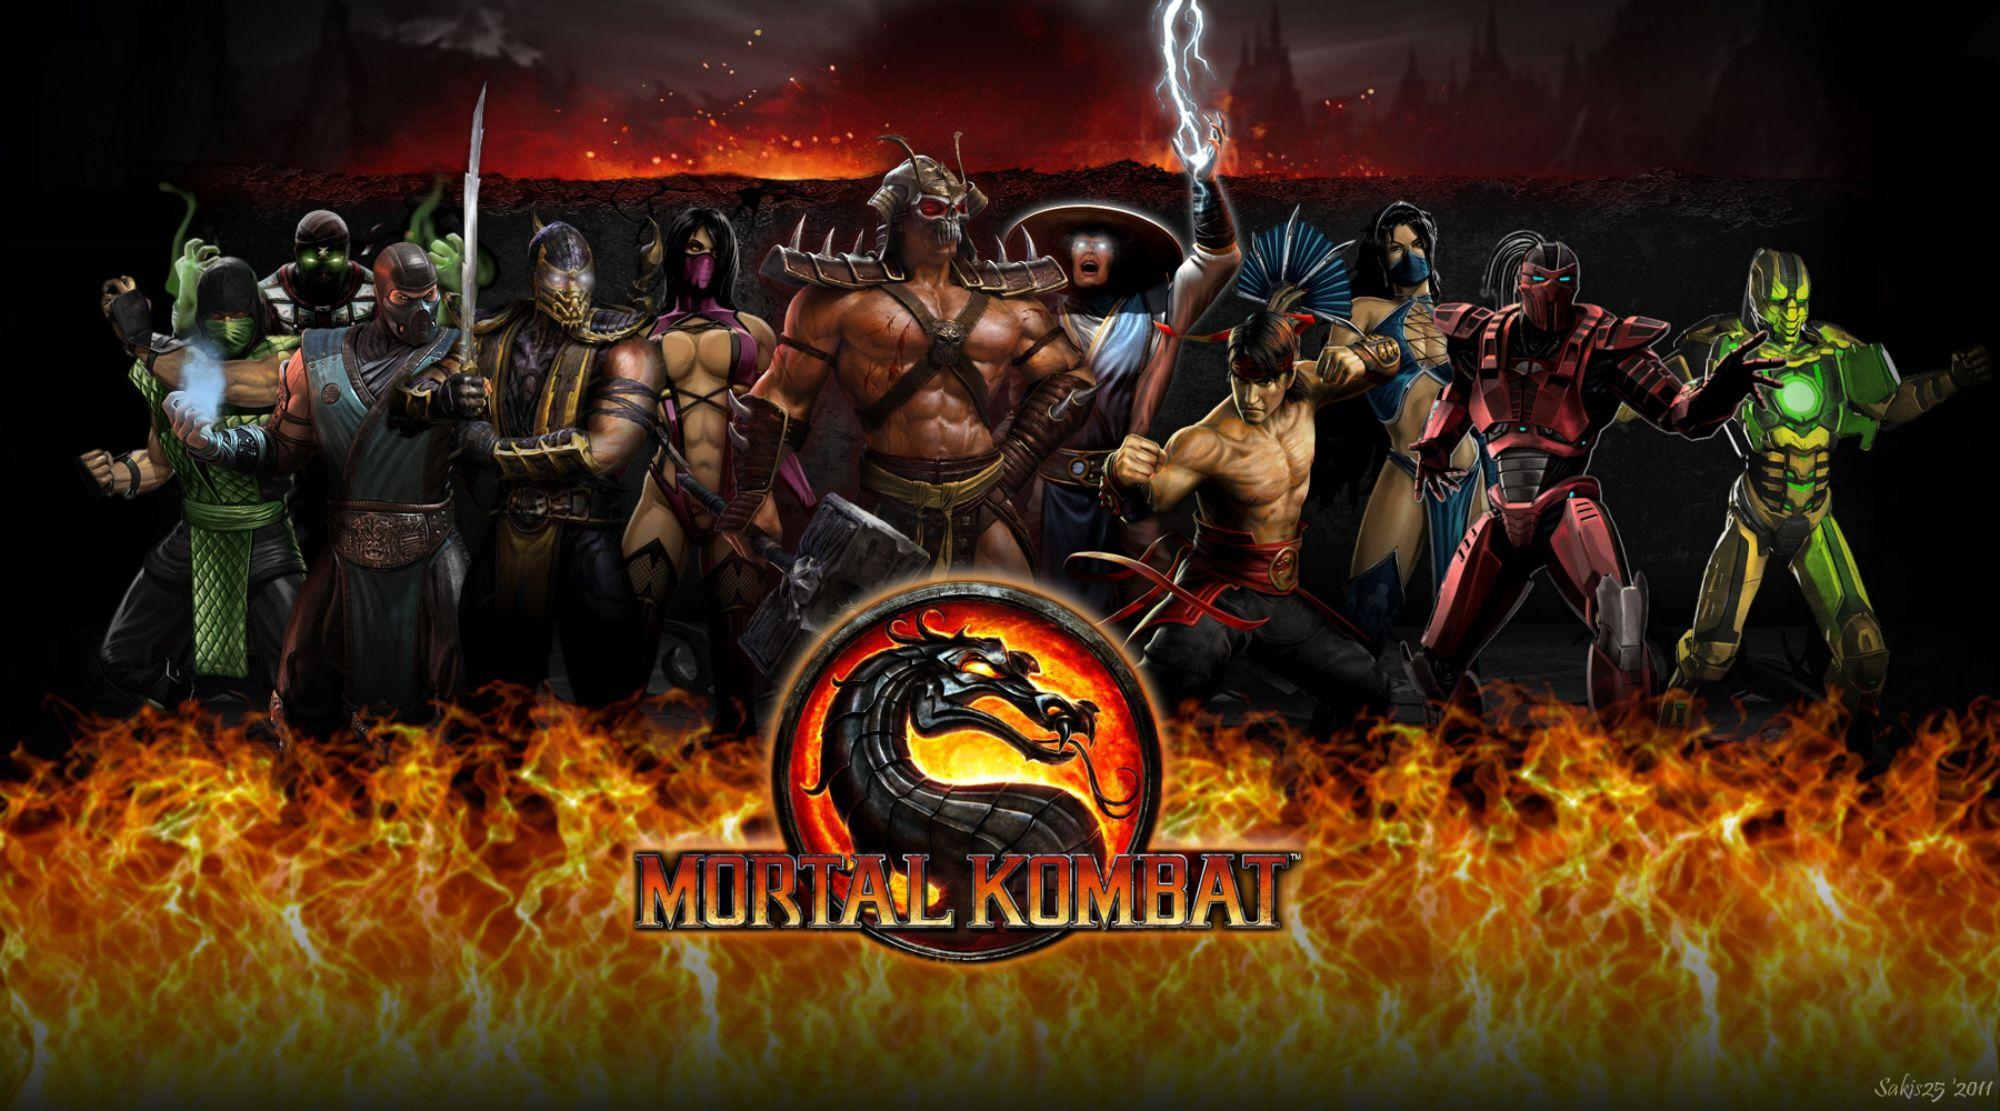 Mortal Kombat image MK wallpapers HD wallpapers and backgrounds